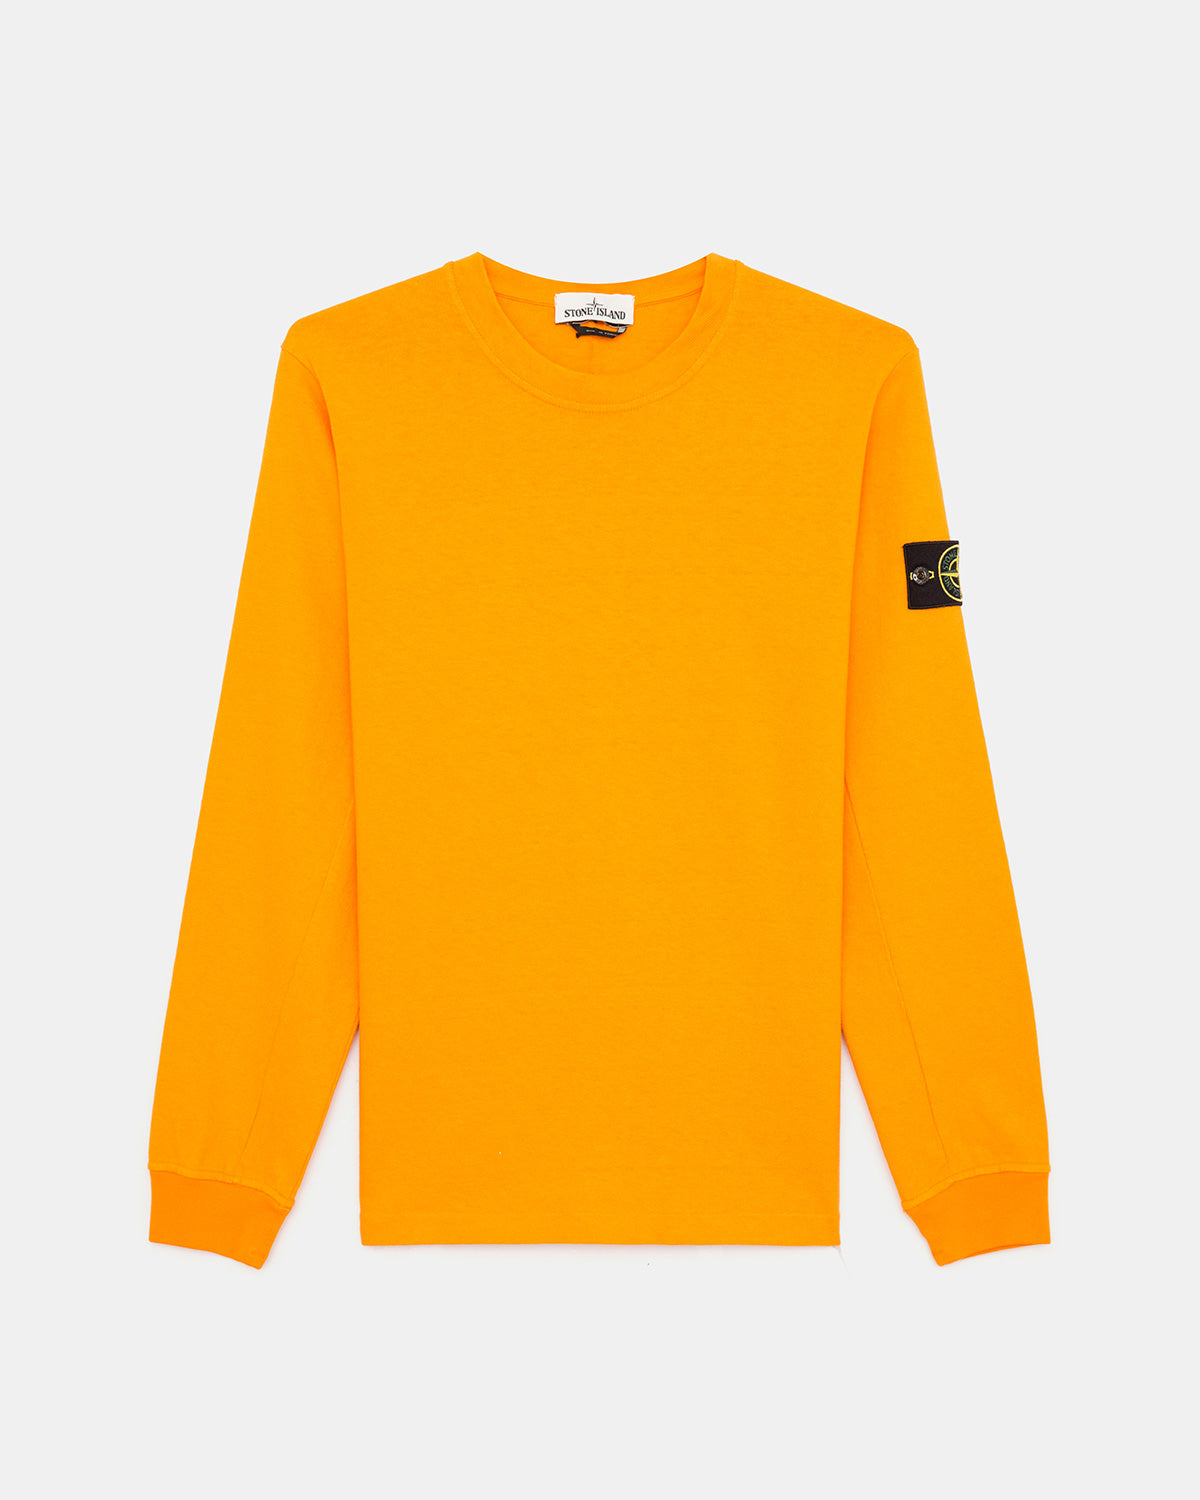 Stone Island - Sweatshirt (Orange)